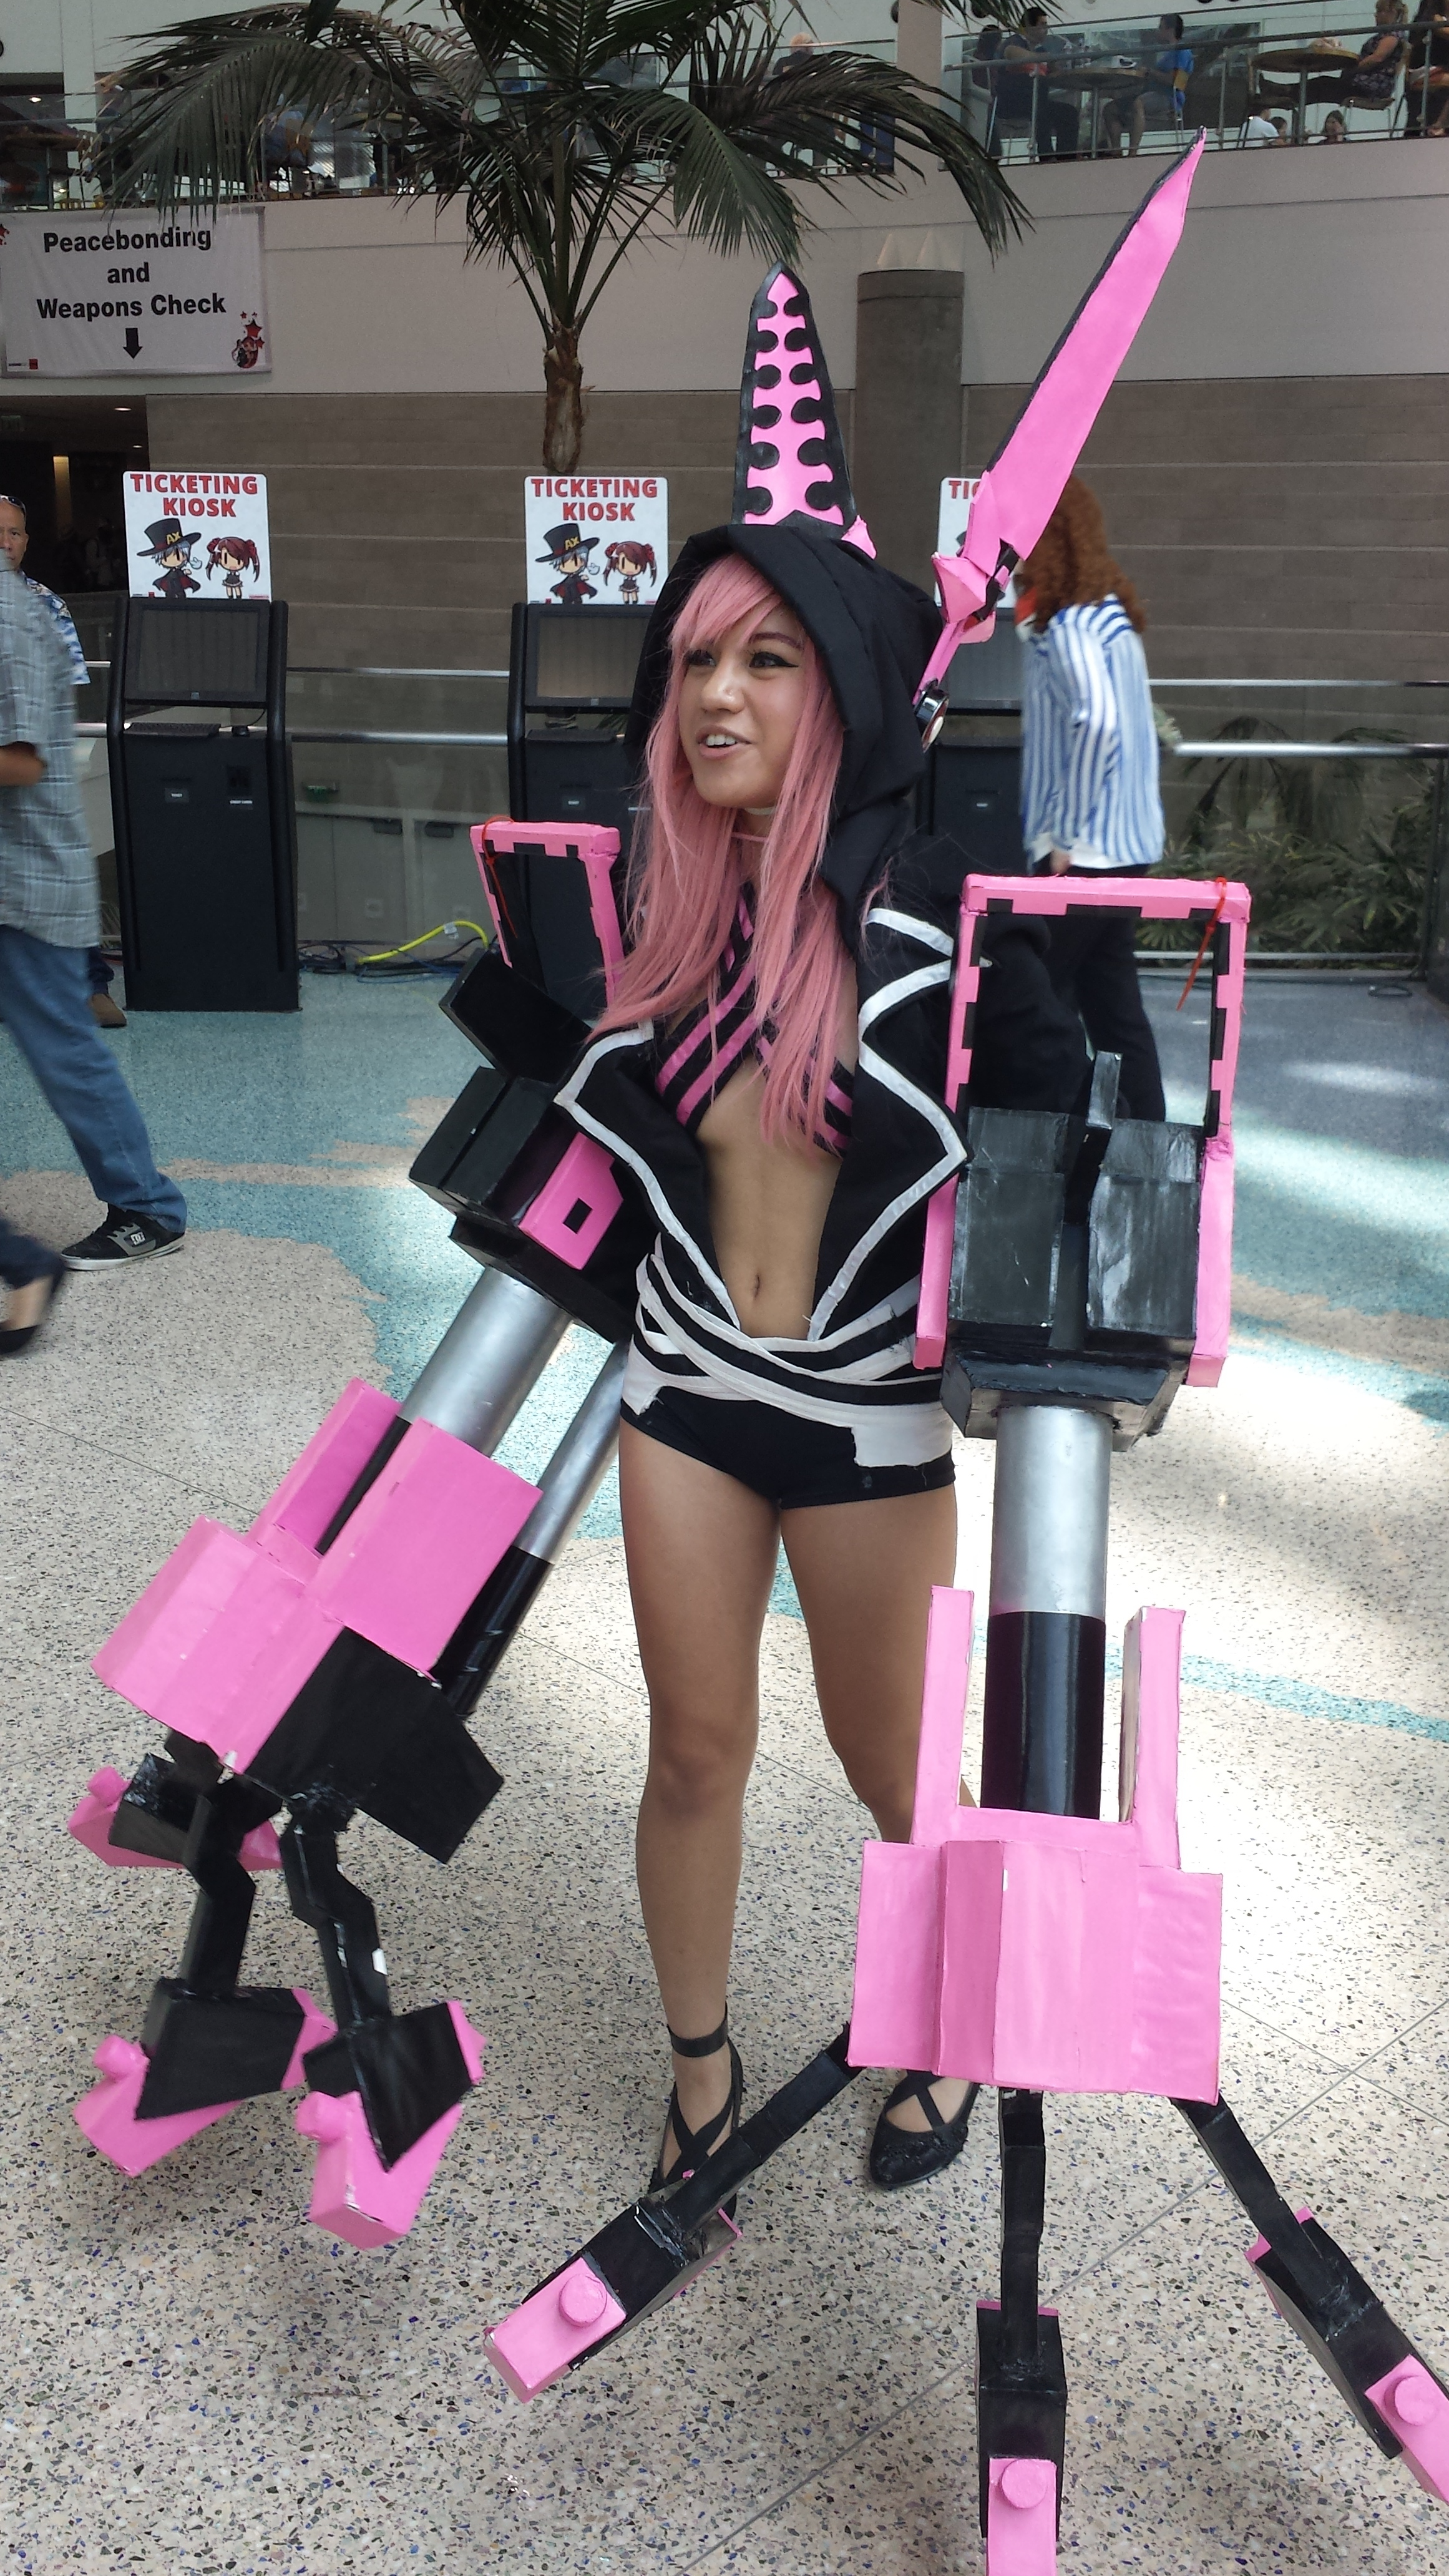 AnimeExpo 2013 - Look at the size of those... arms